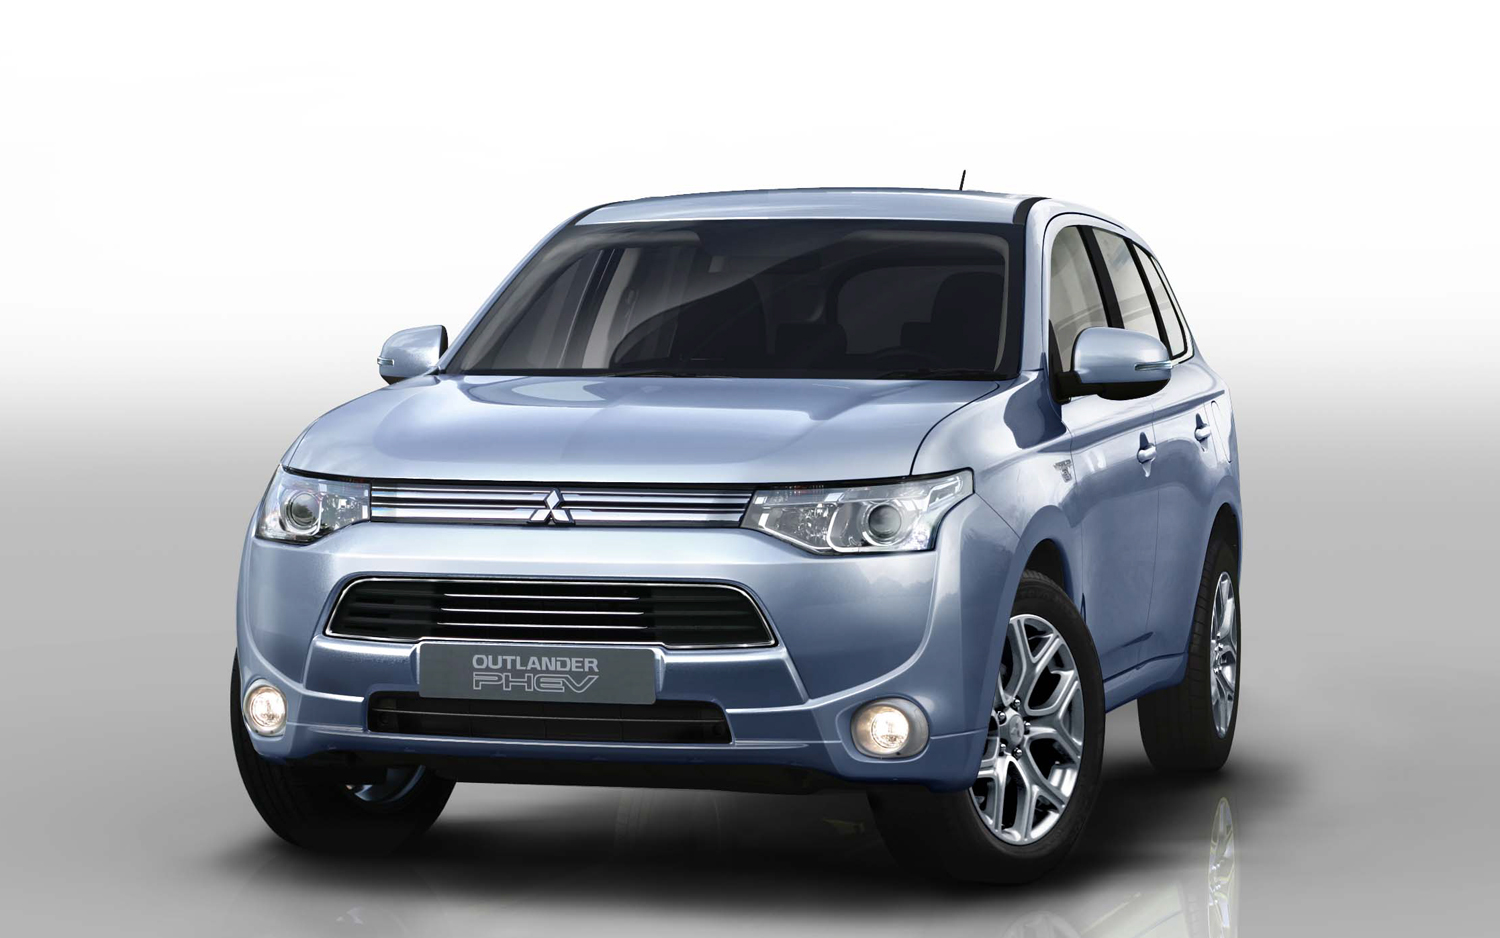 Mitsubishi Outlander Phev Delayed Due To Battery Supply Issues